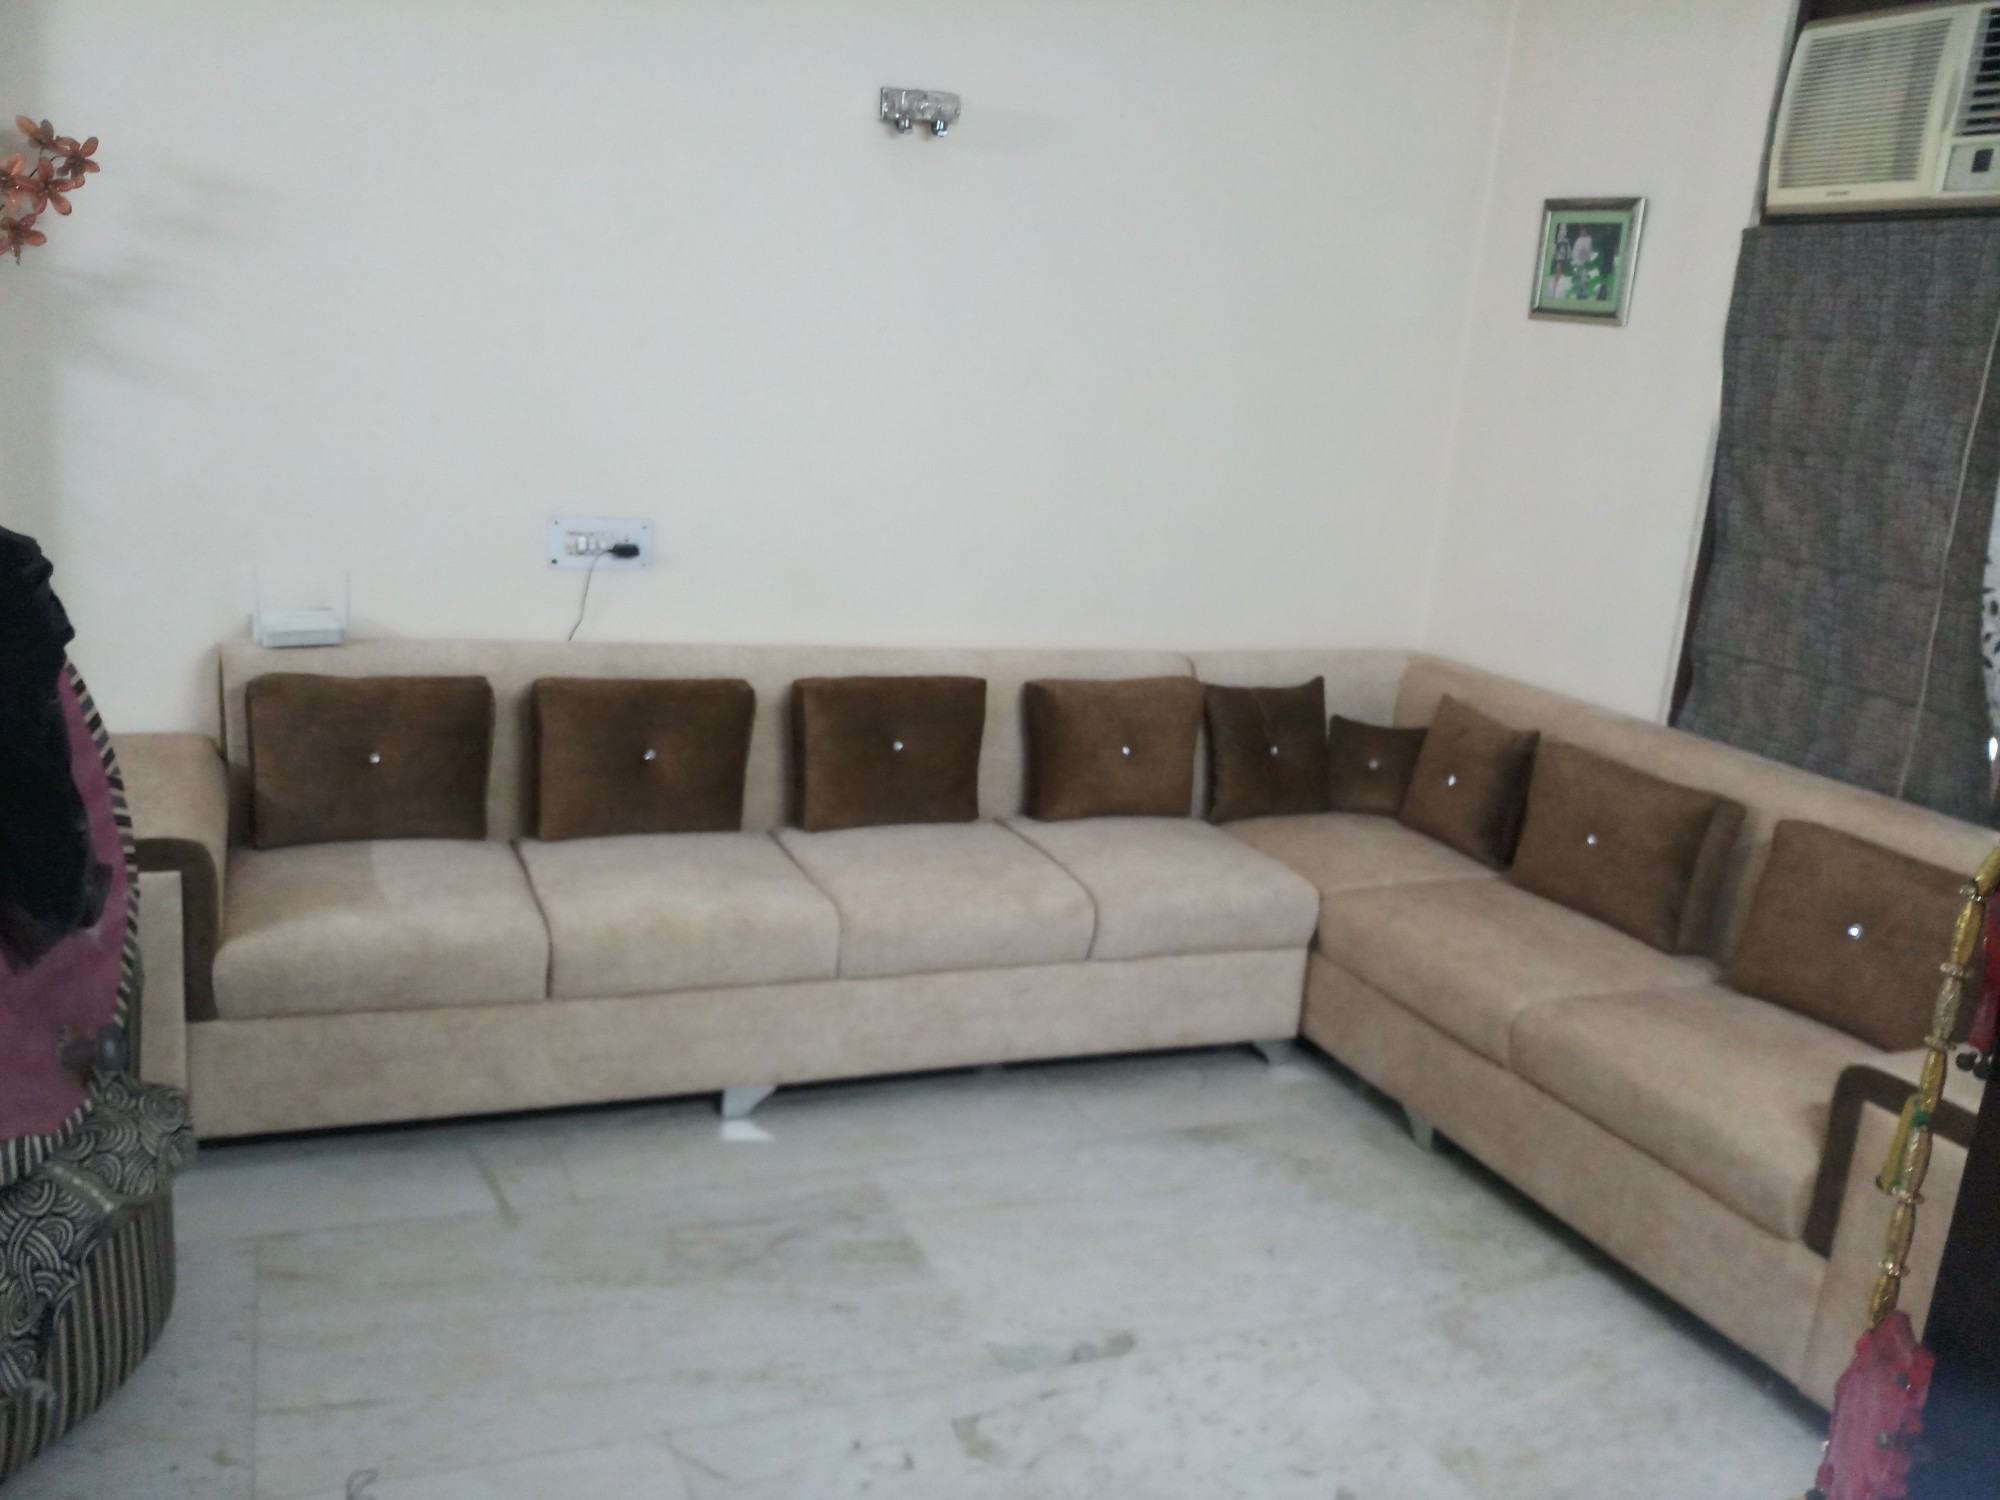 Sofa Upholstery Thrissur Mmk Sofa Furniture Repairing Centre In Sector 93 Noida 201301